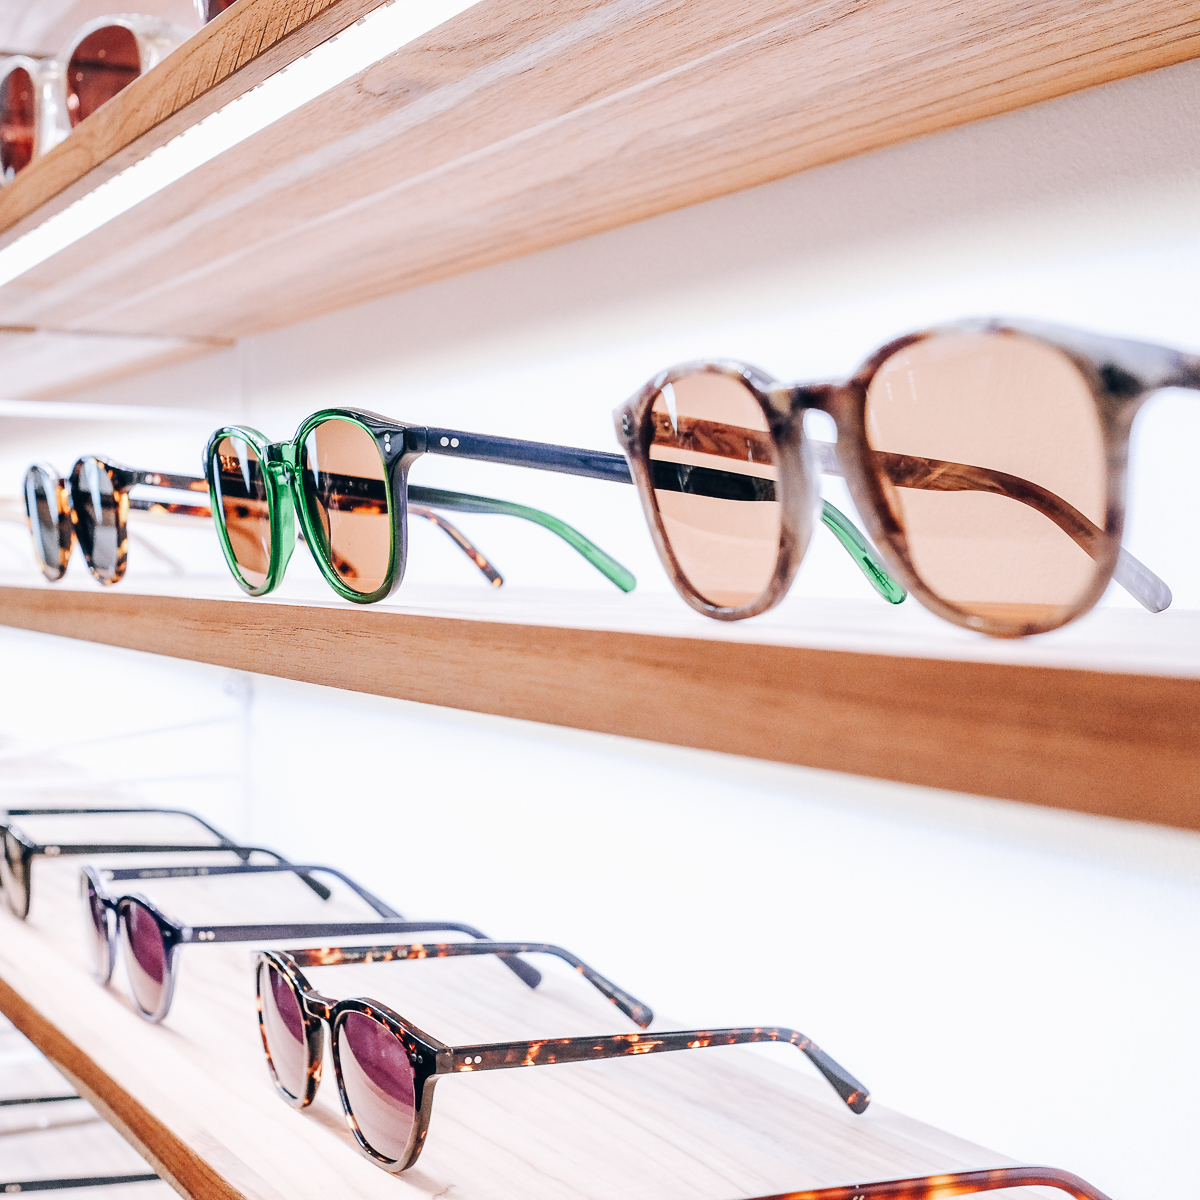 Found Precision Eyewear Berlin Mitte-4